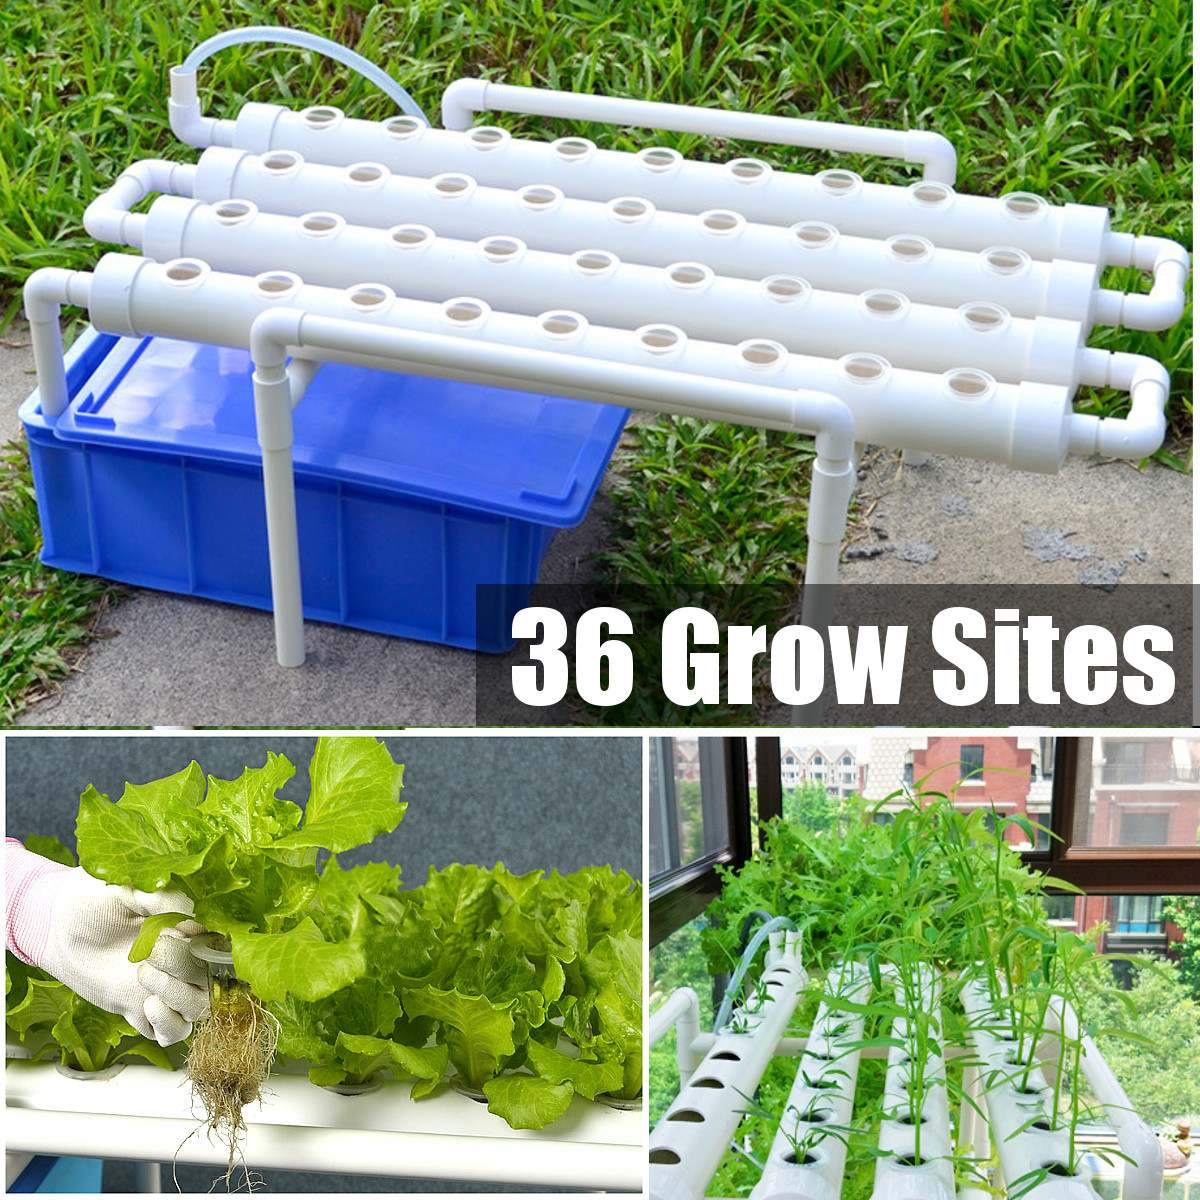 Hydroponic System Pots To Grow Kit Equipment Garden Vegetables Planting Box 36 Sites Hydroponic Rack Holder Soilless Seedling